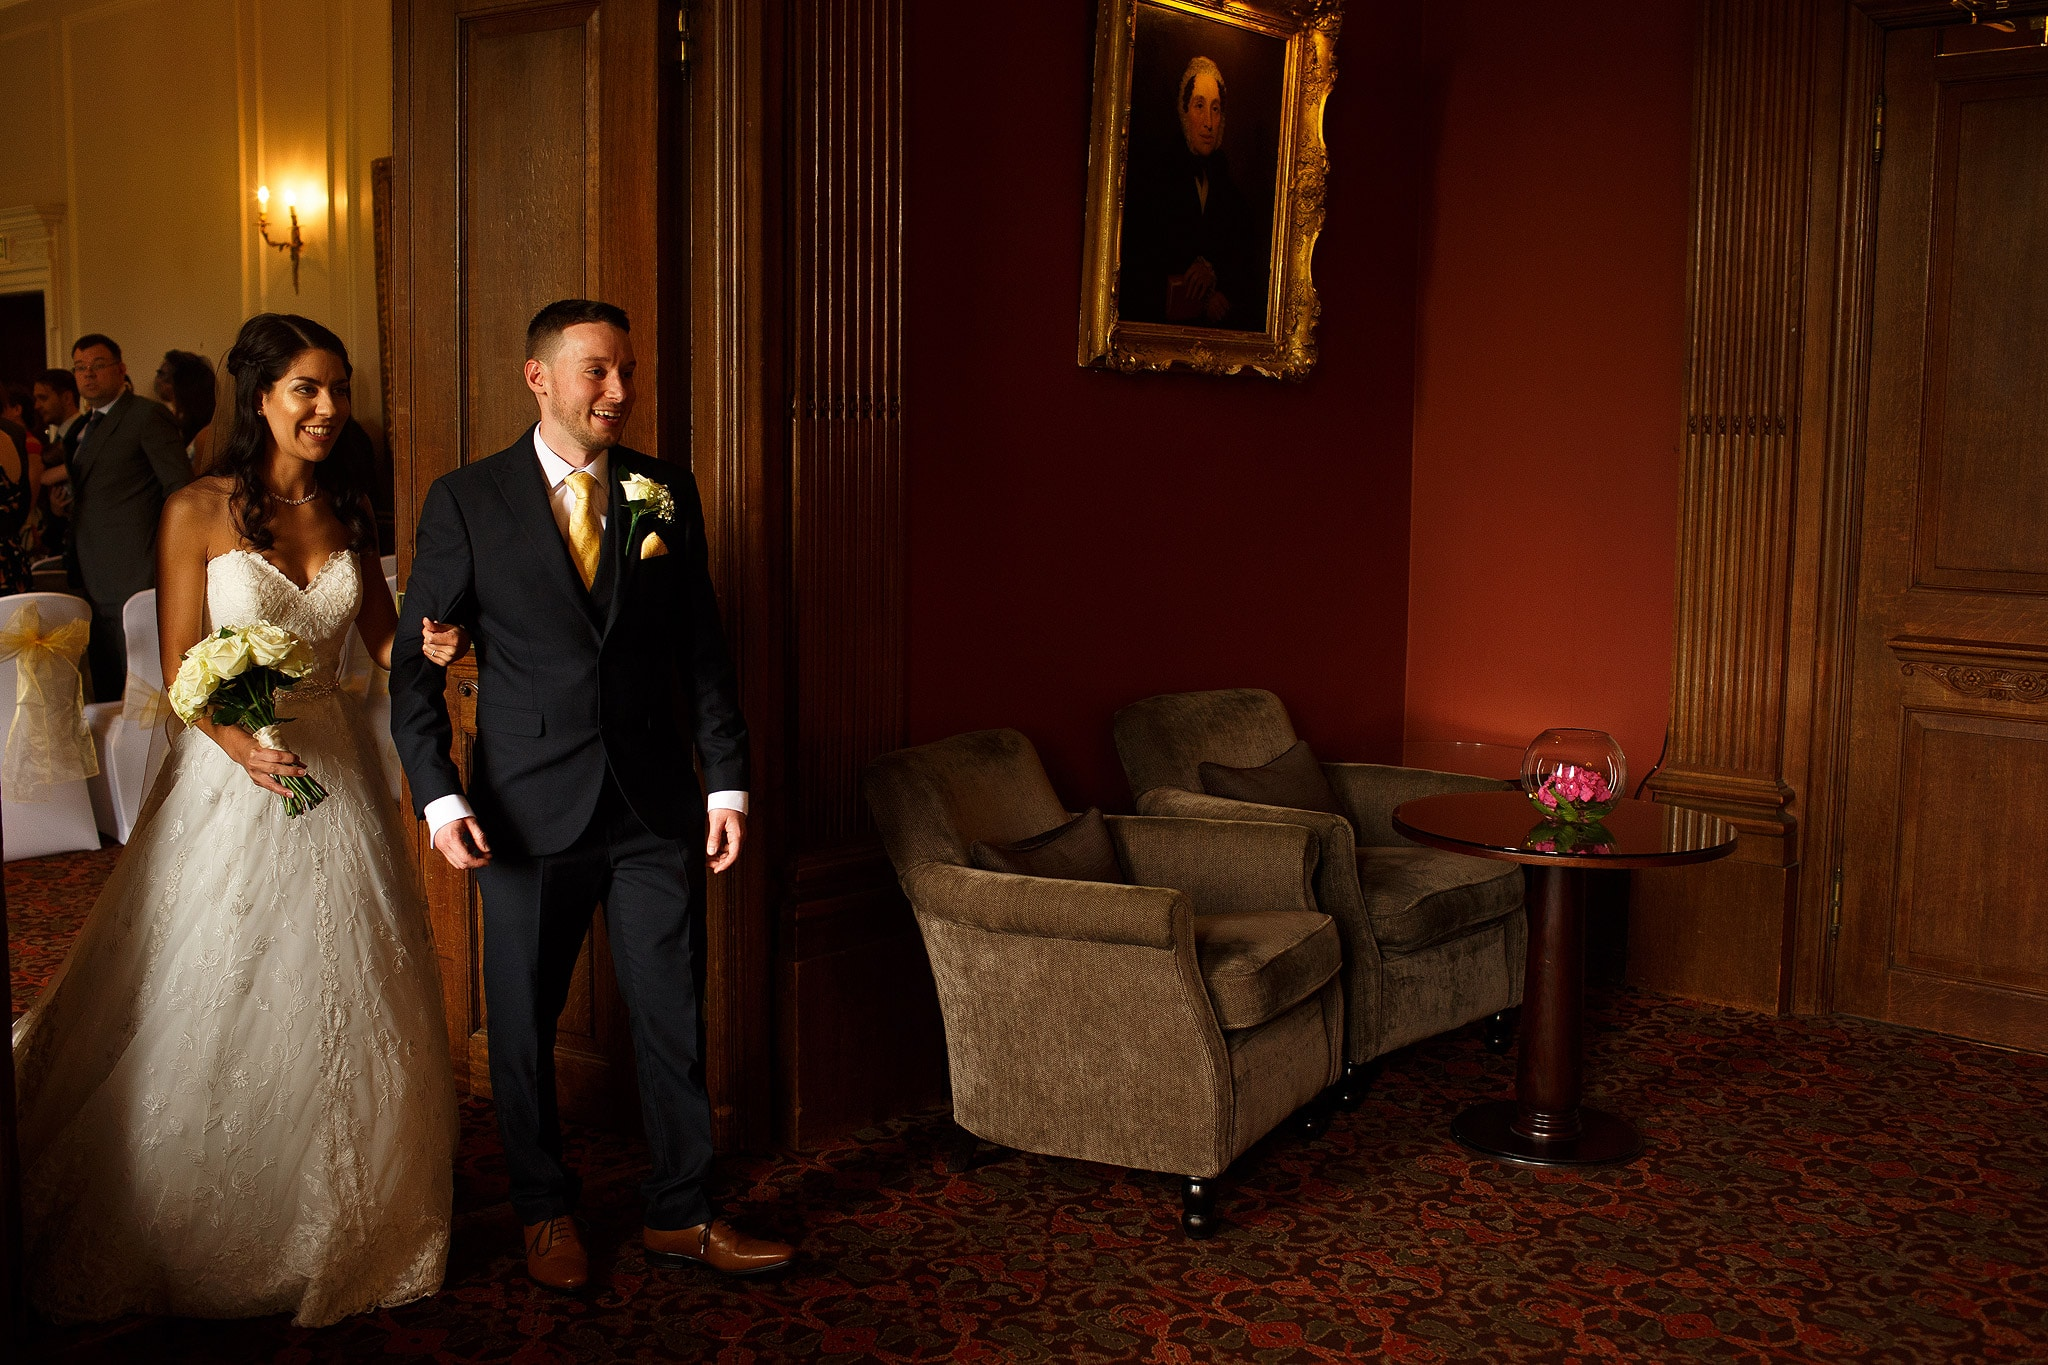 Bride and Groom entering wedding reception inside Crathorne Hall